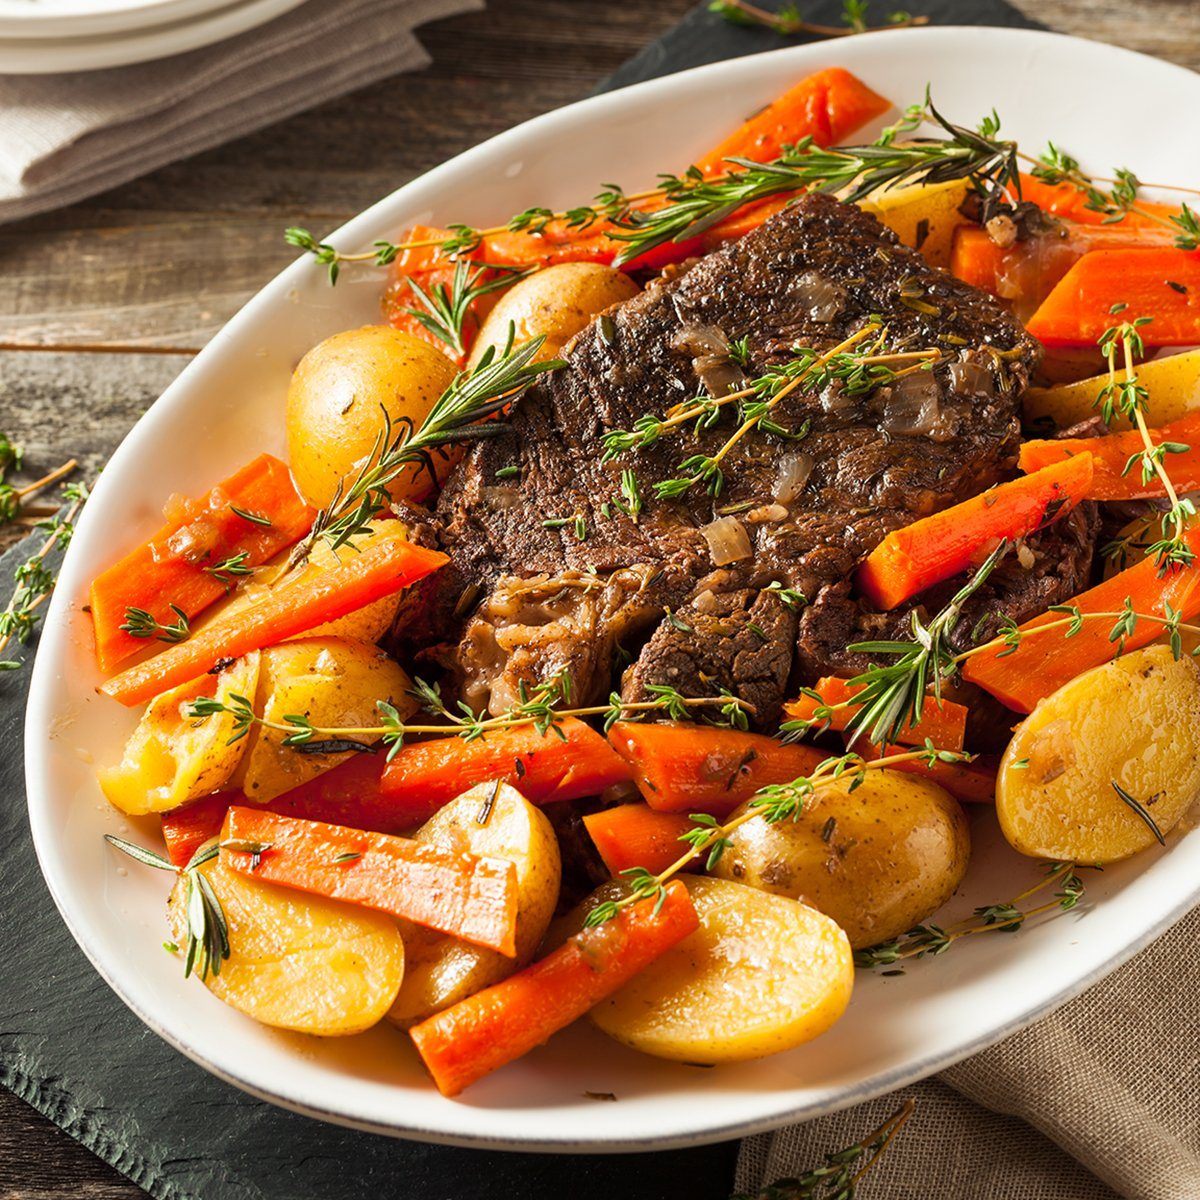 Homemade Slow Cooker Pot Roast with Carrots and Potatoes; Shutterstock ID 394255612; Job (TFH, TOH, RD, BNB, CWM, CM): TOH